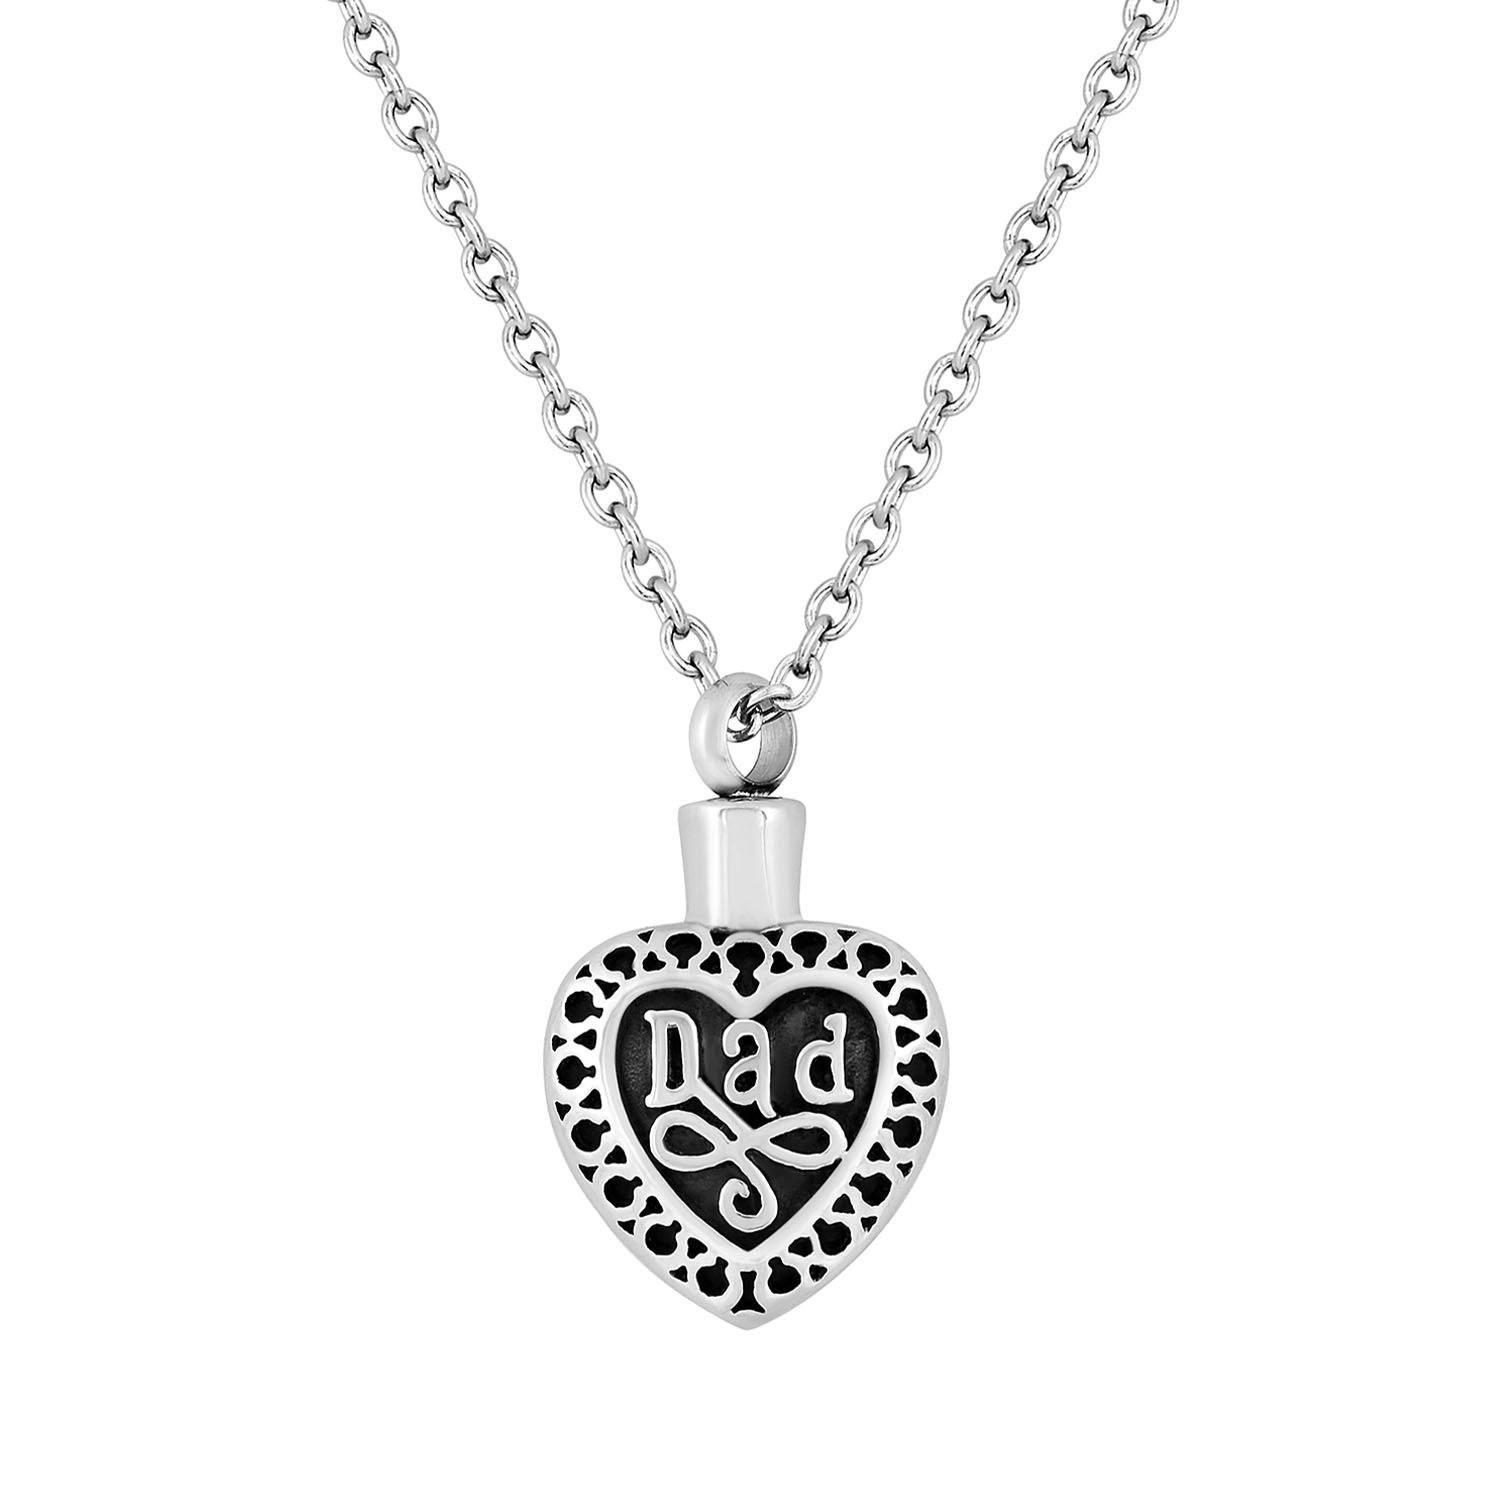 Cremation Jewelry Necklace for Ashes - Dad Heart